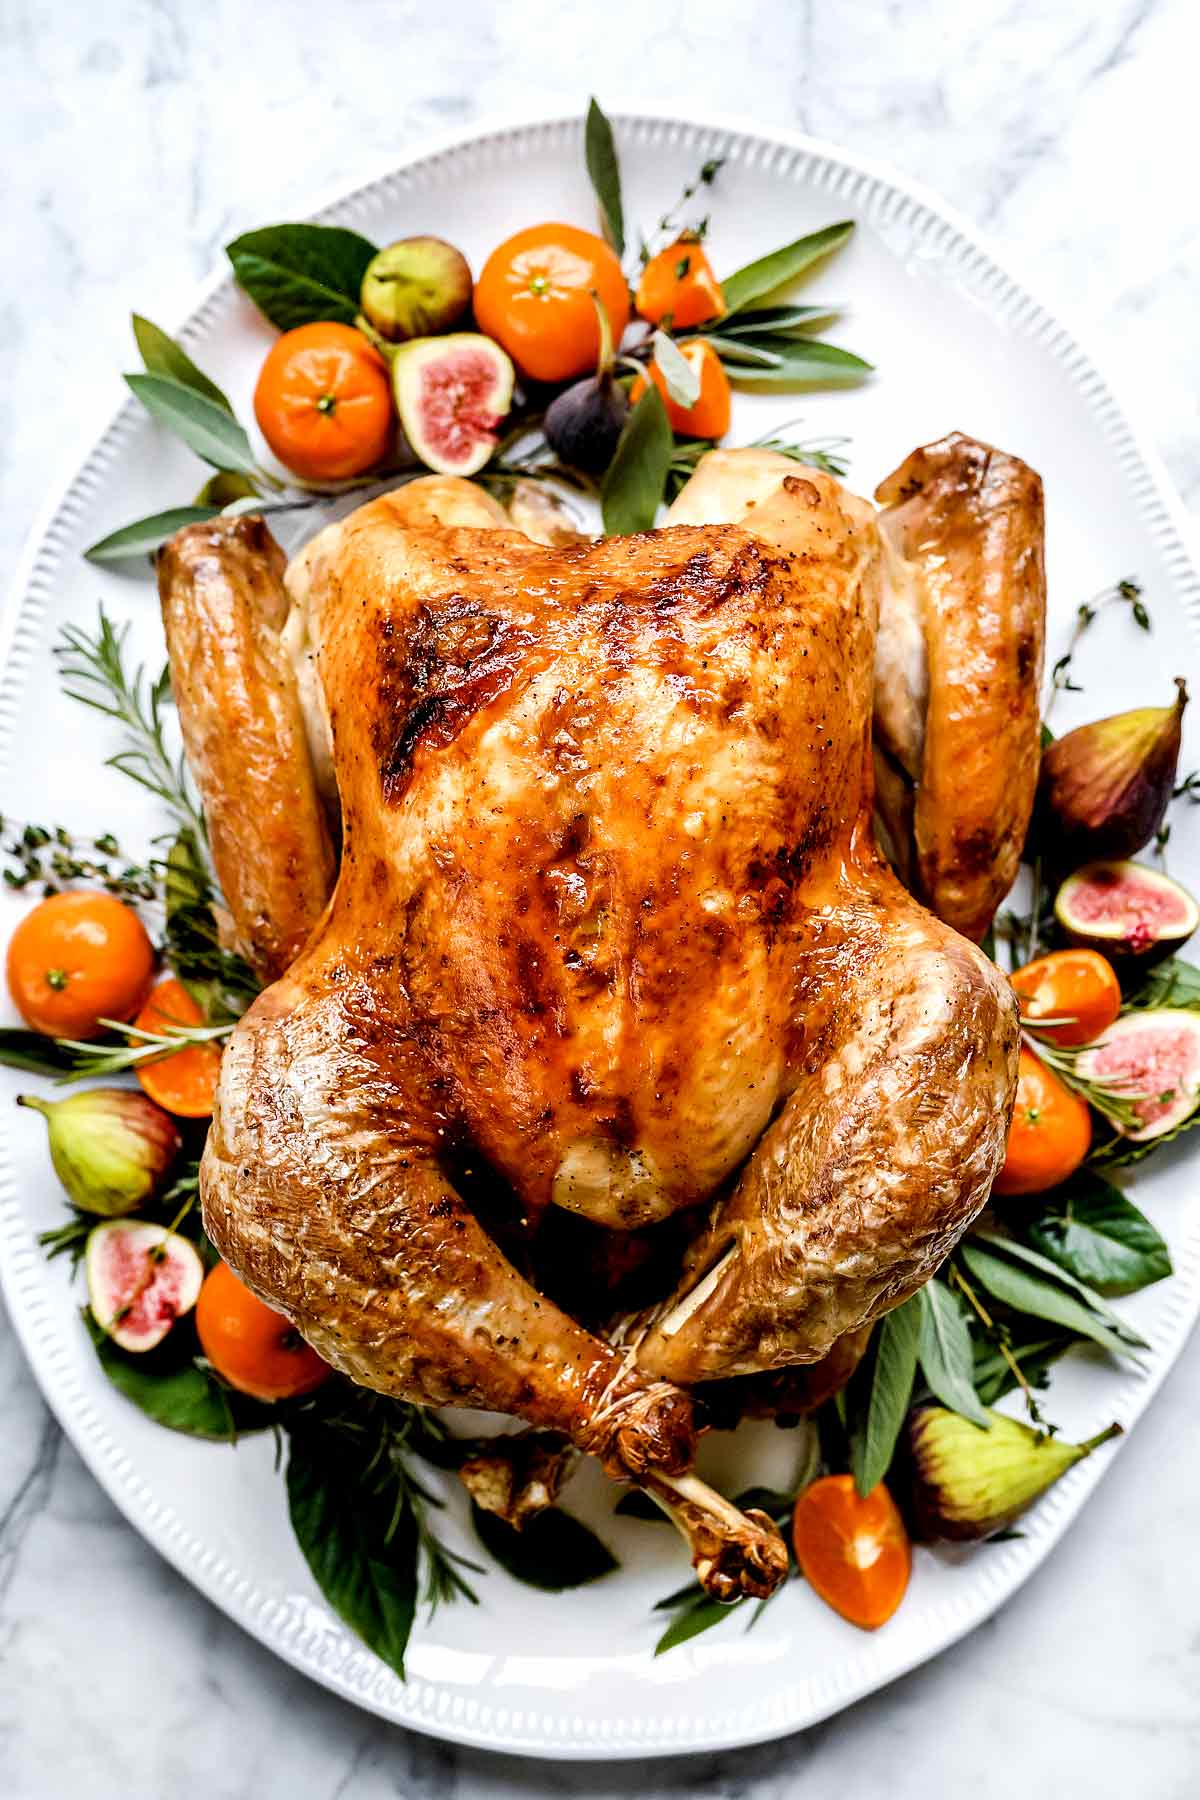 How To Cook The Best Juicy Turkey Foodiecrush Com